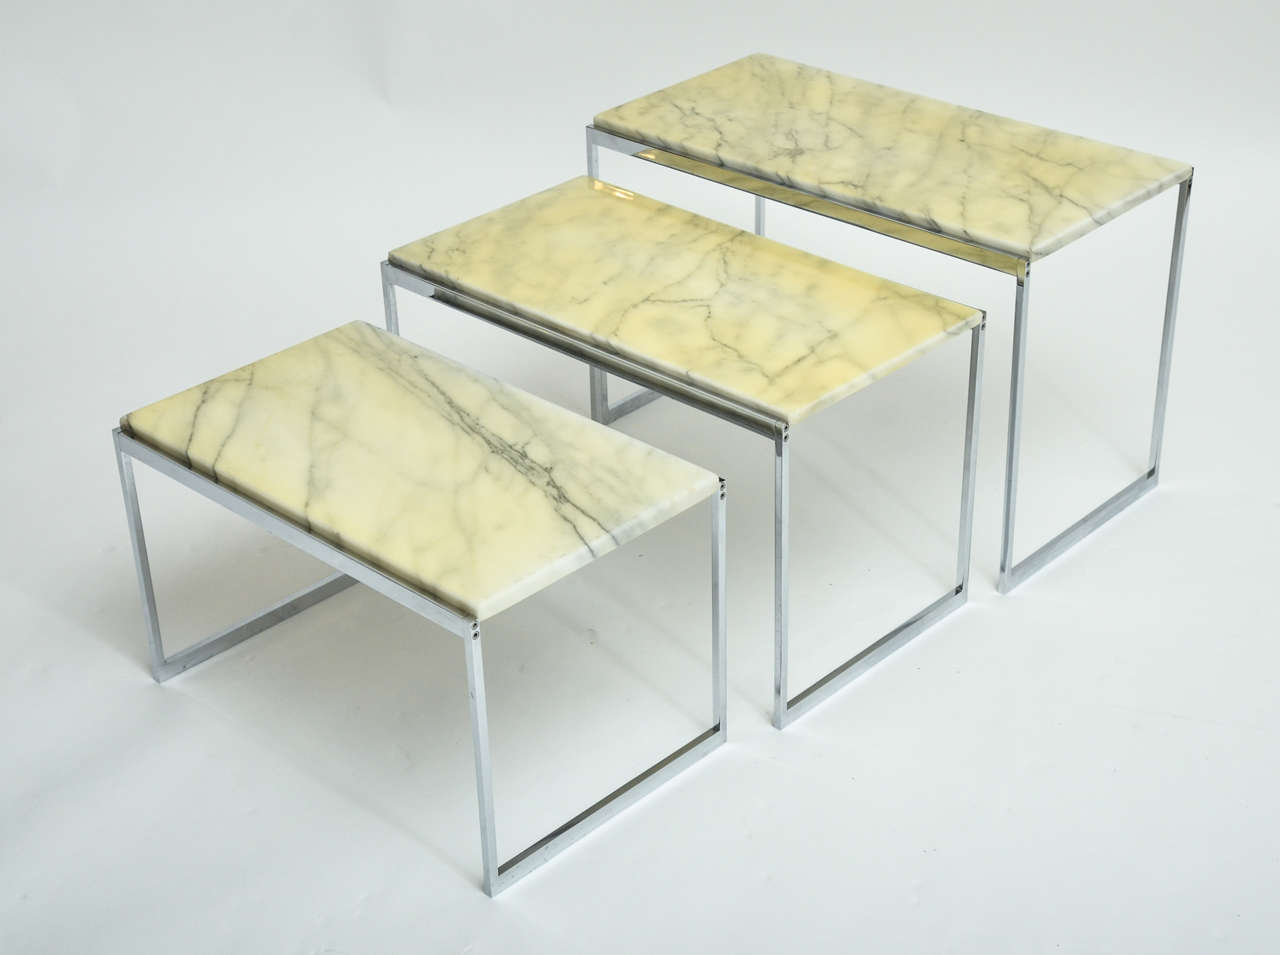 1970s Italian Chrome And Marble Nest Of Three Tables With Original Dimensions Listed Are